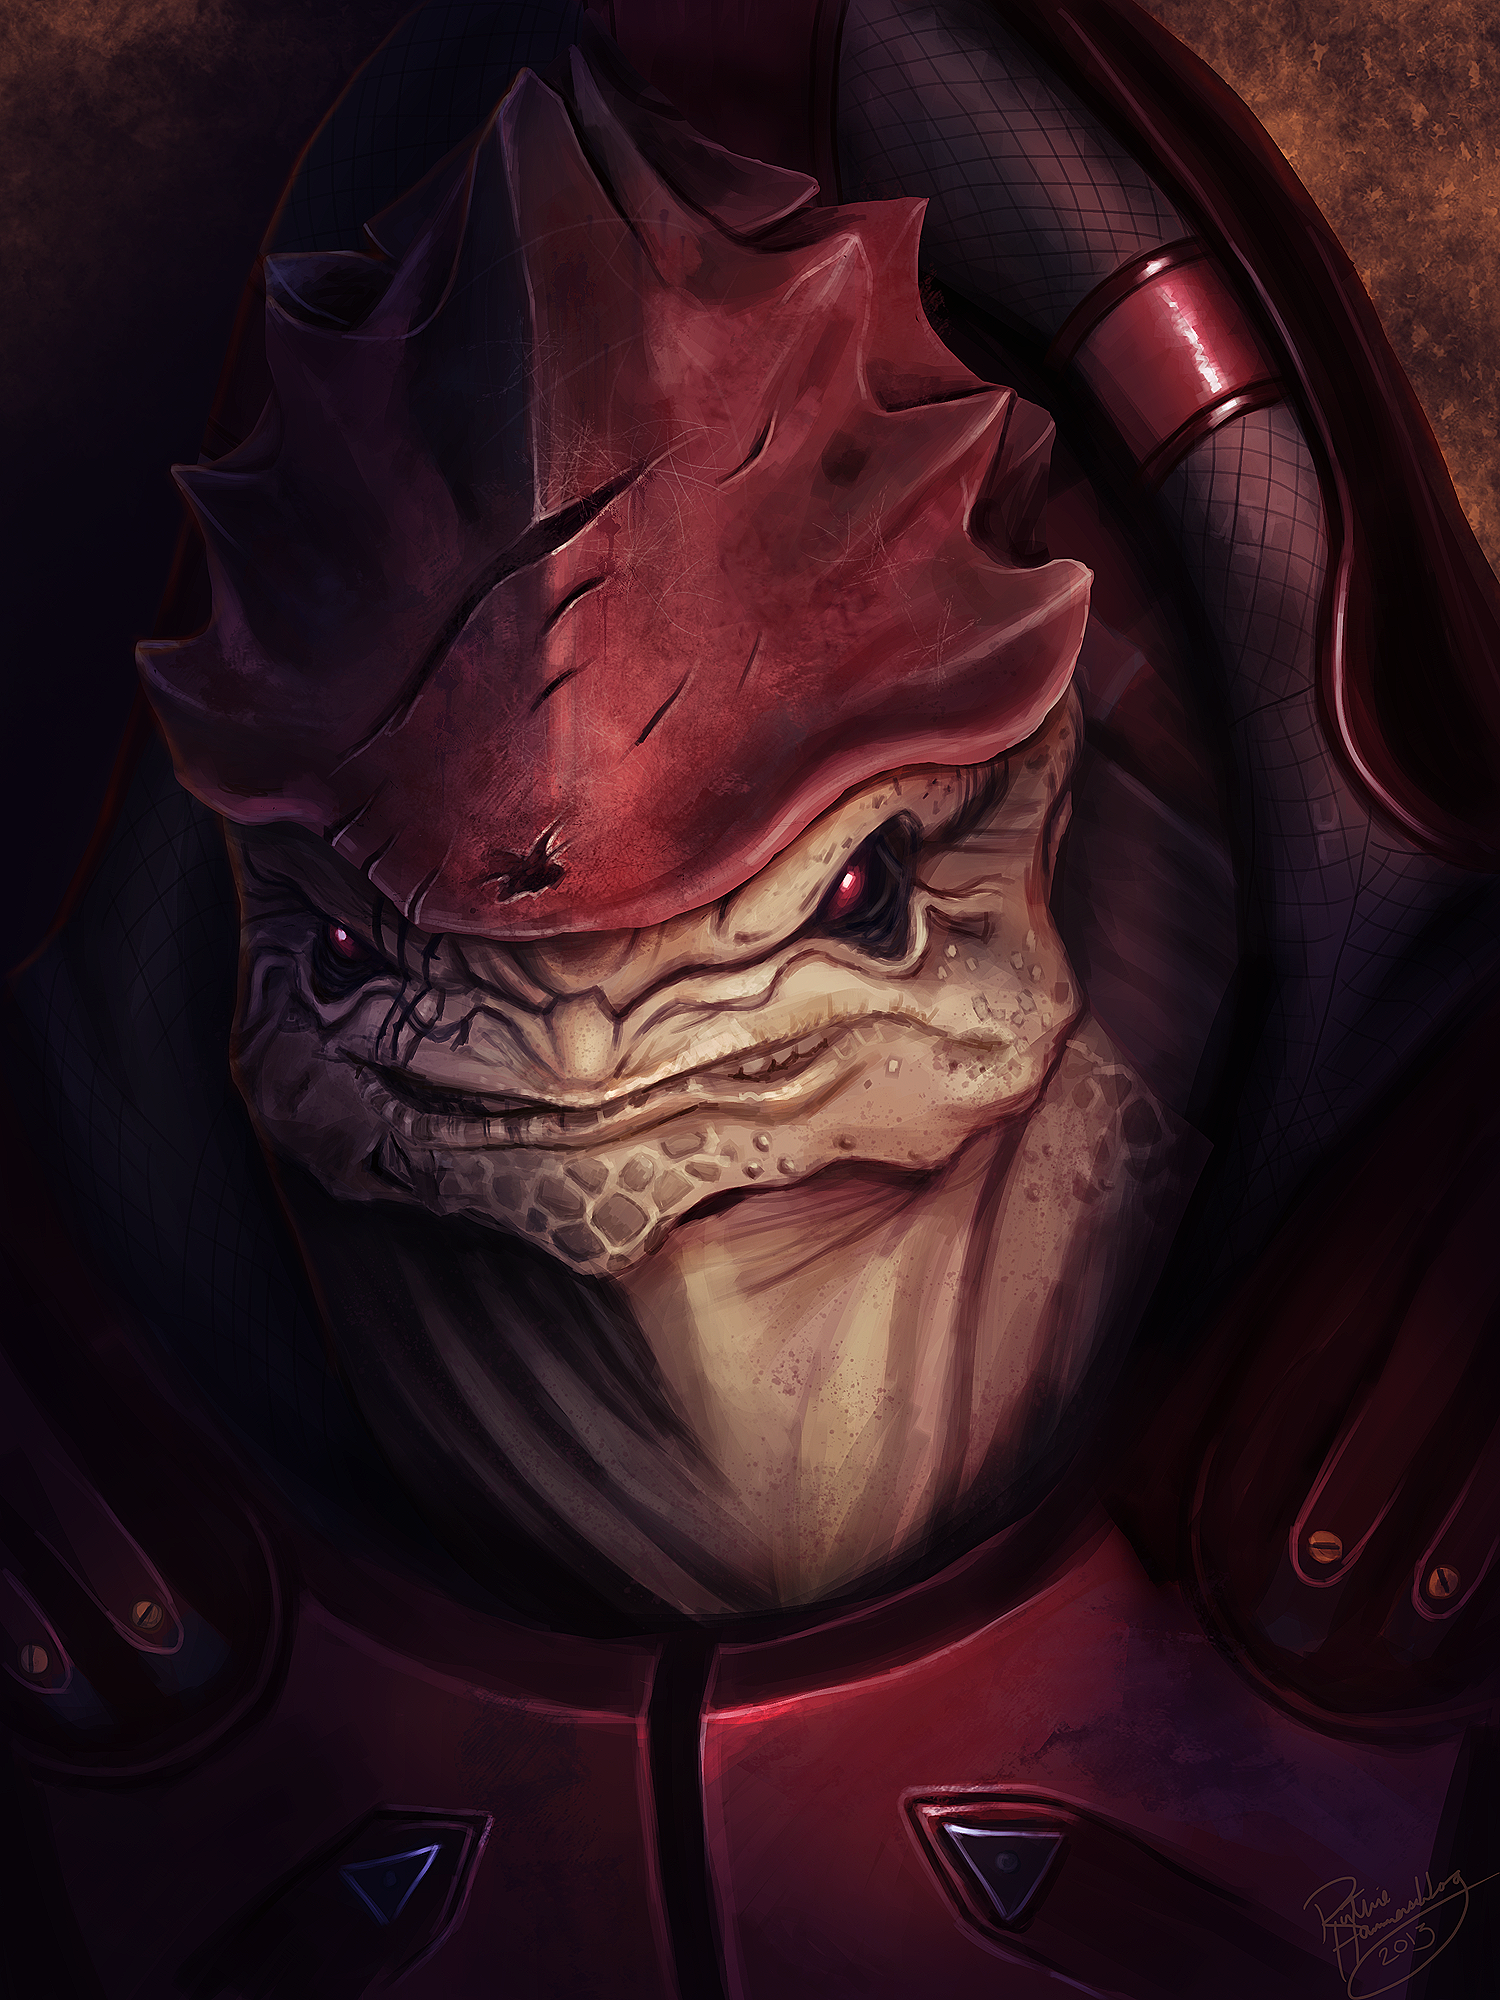 Mass Effect: Urdnot Wrex